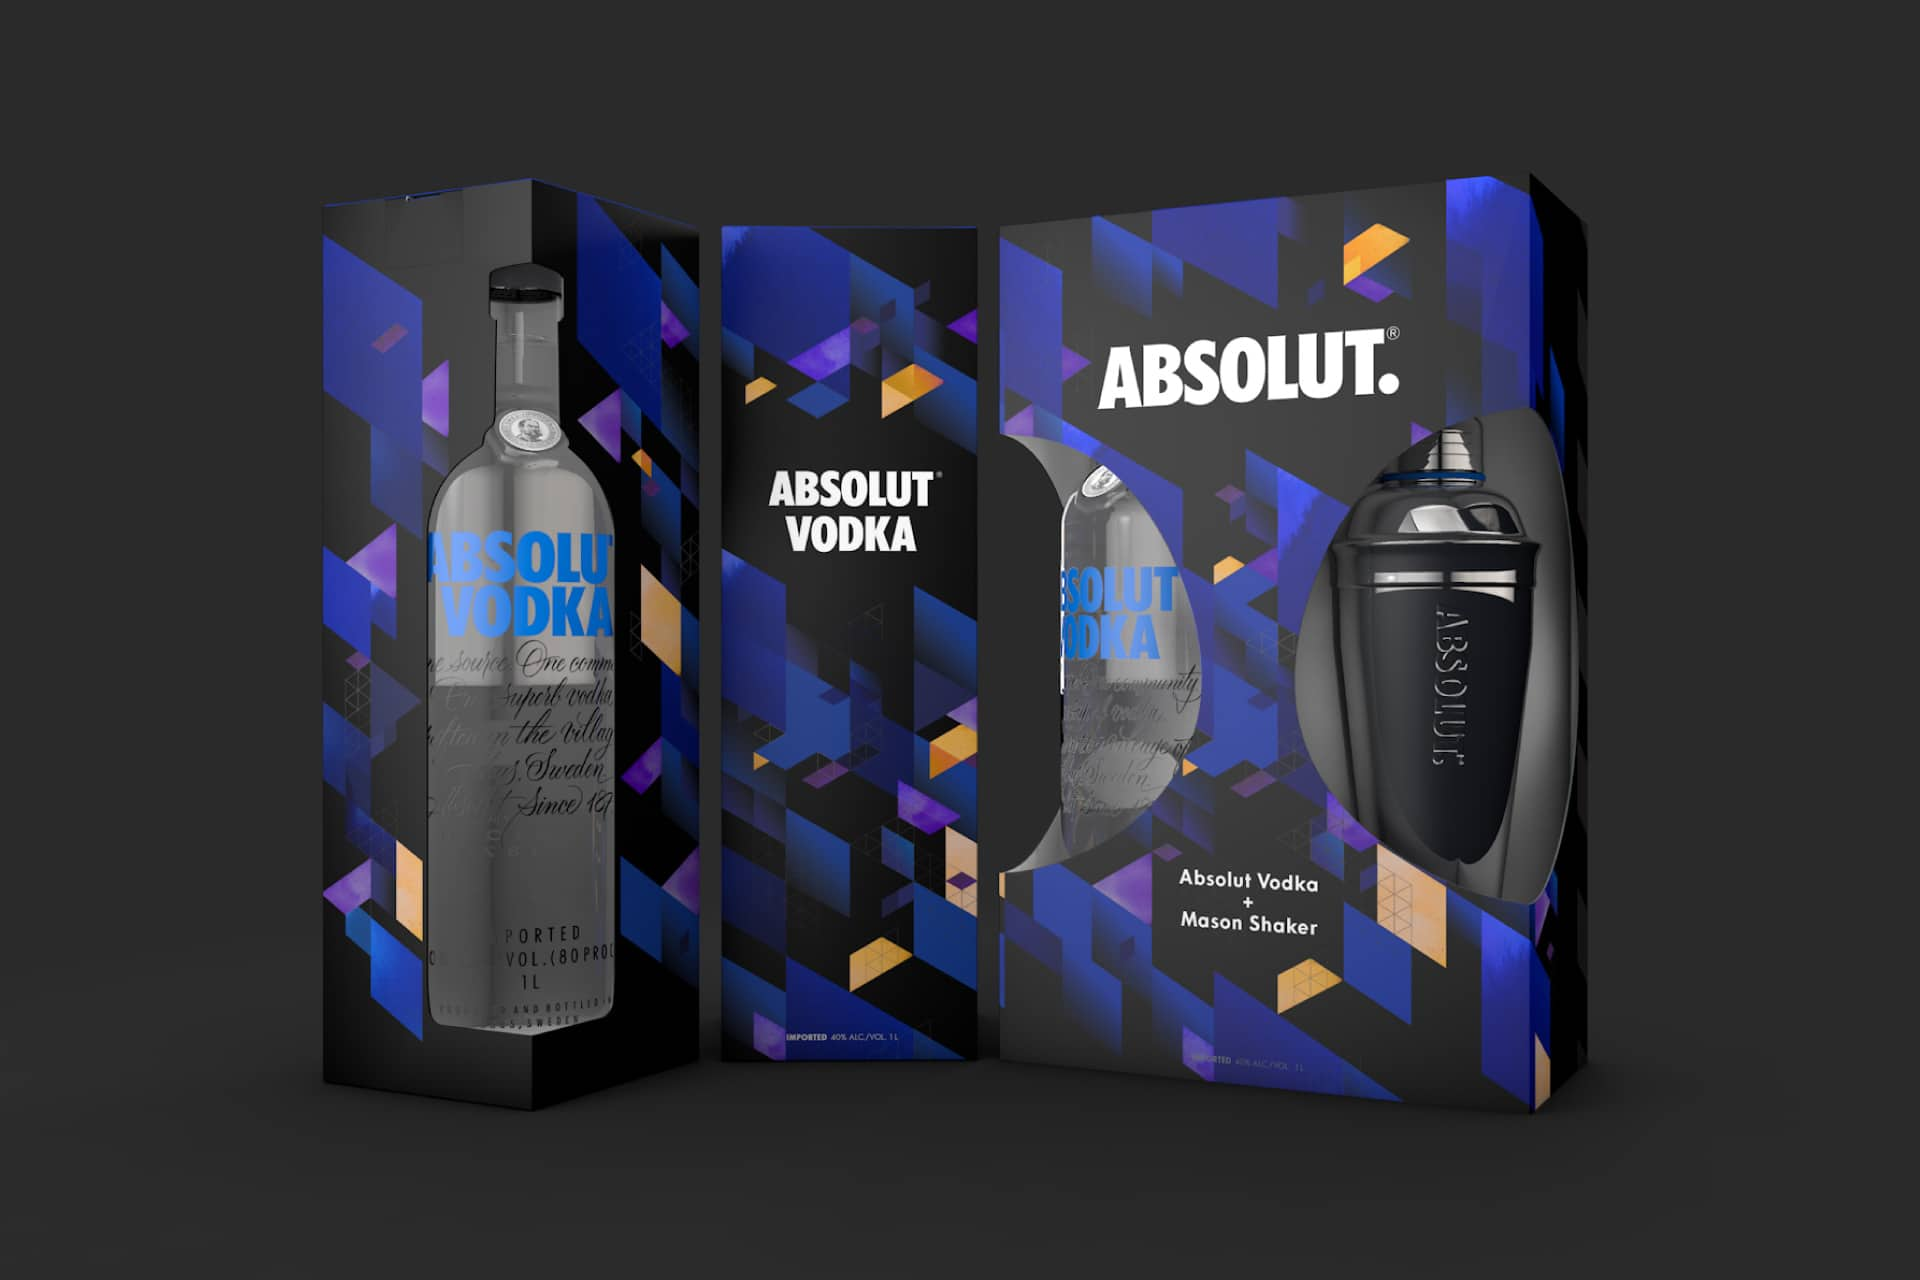 2017 graphic design print design trends eighties design neons absolut vodka packaging design